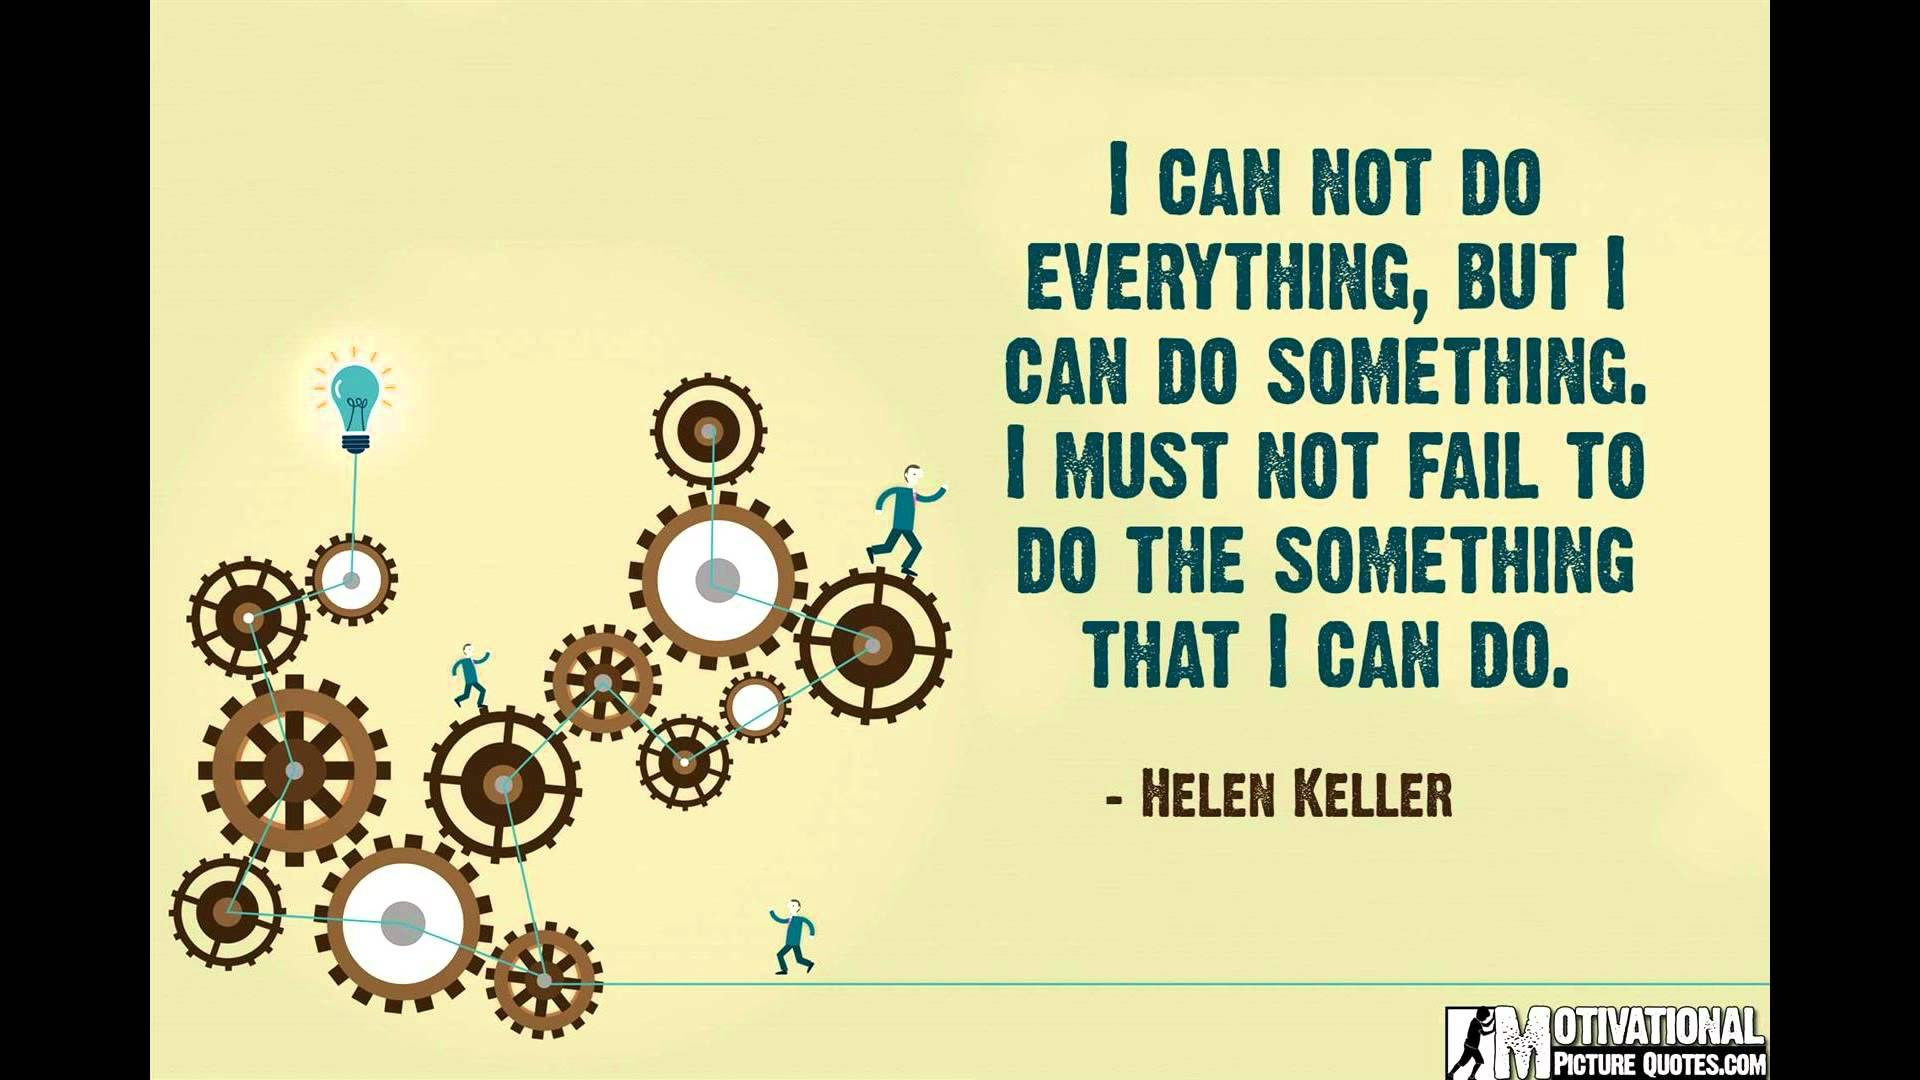 motivation today: Motivational Quotes and Images about Having a